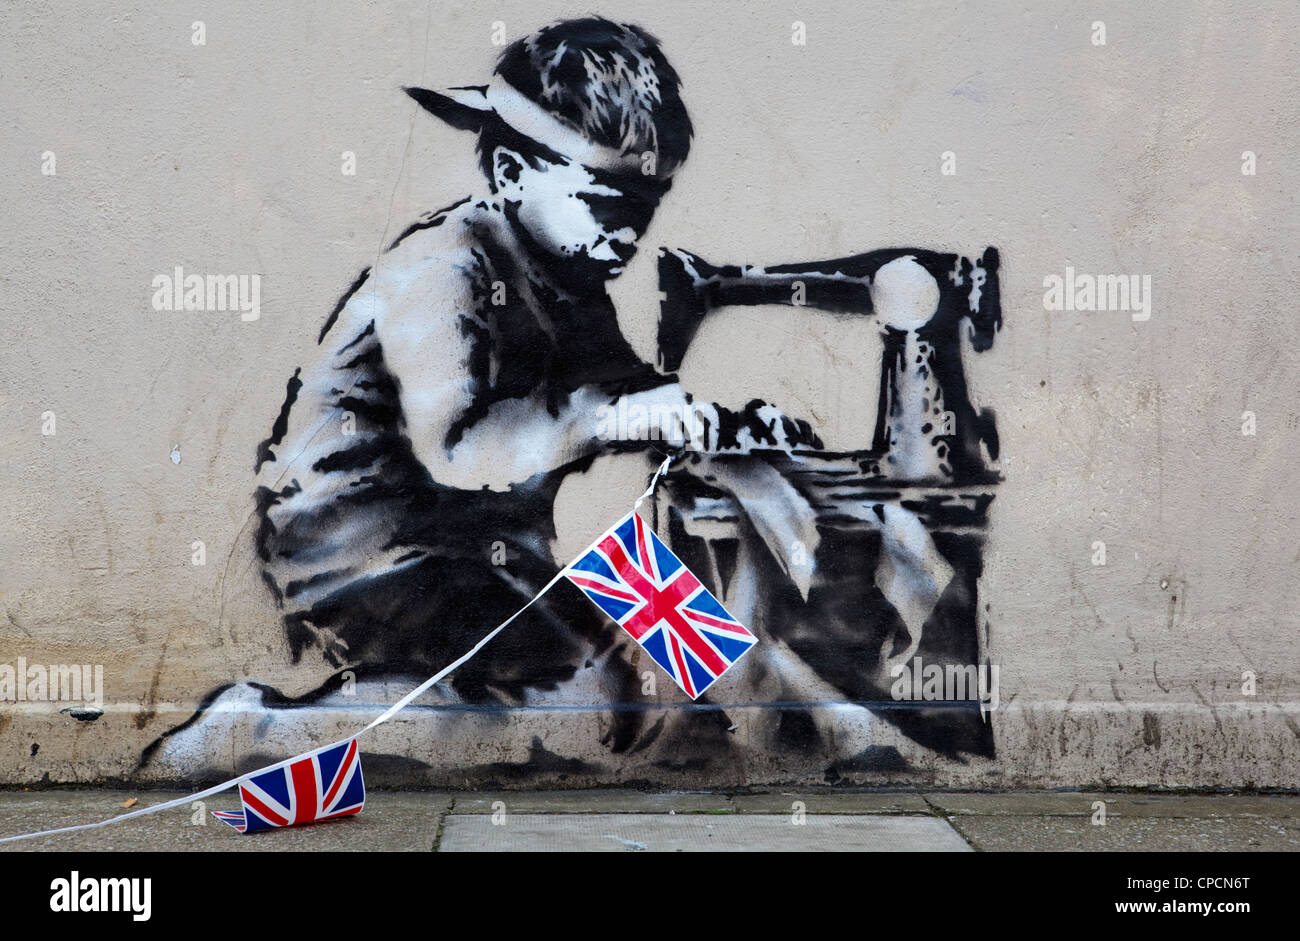 The work 'Slave Labour' from Graffiti Artist Banksy, London UK - Stock Image